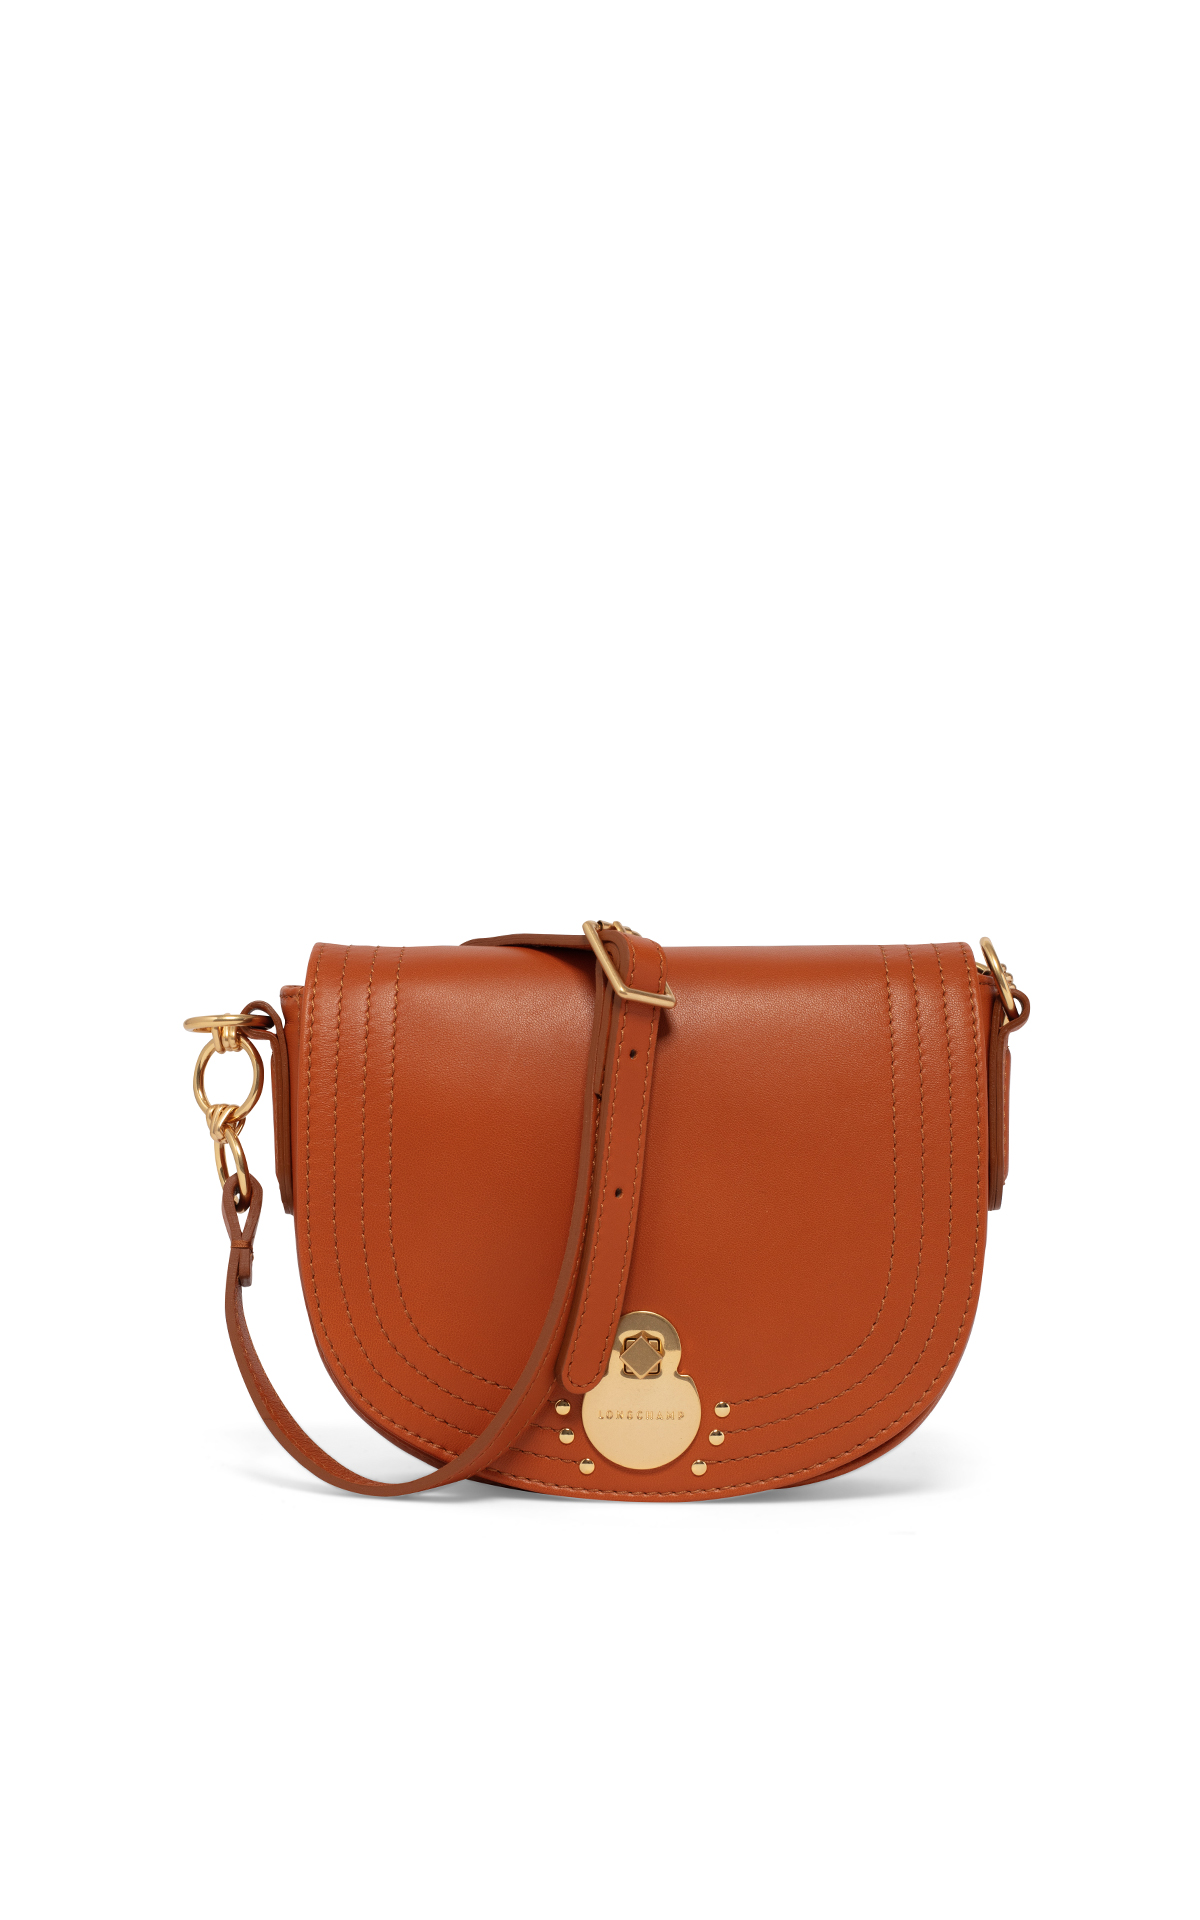 Longchamp Cavalcade crossbody bag*